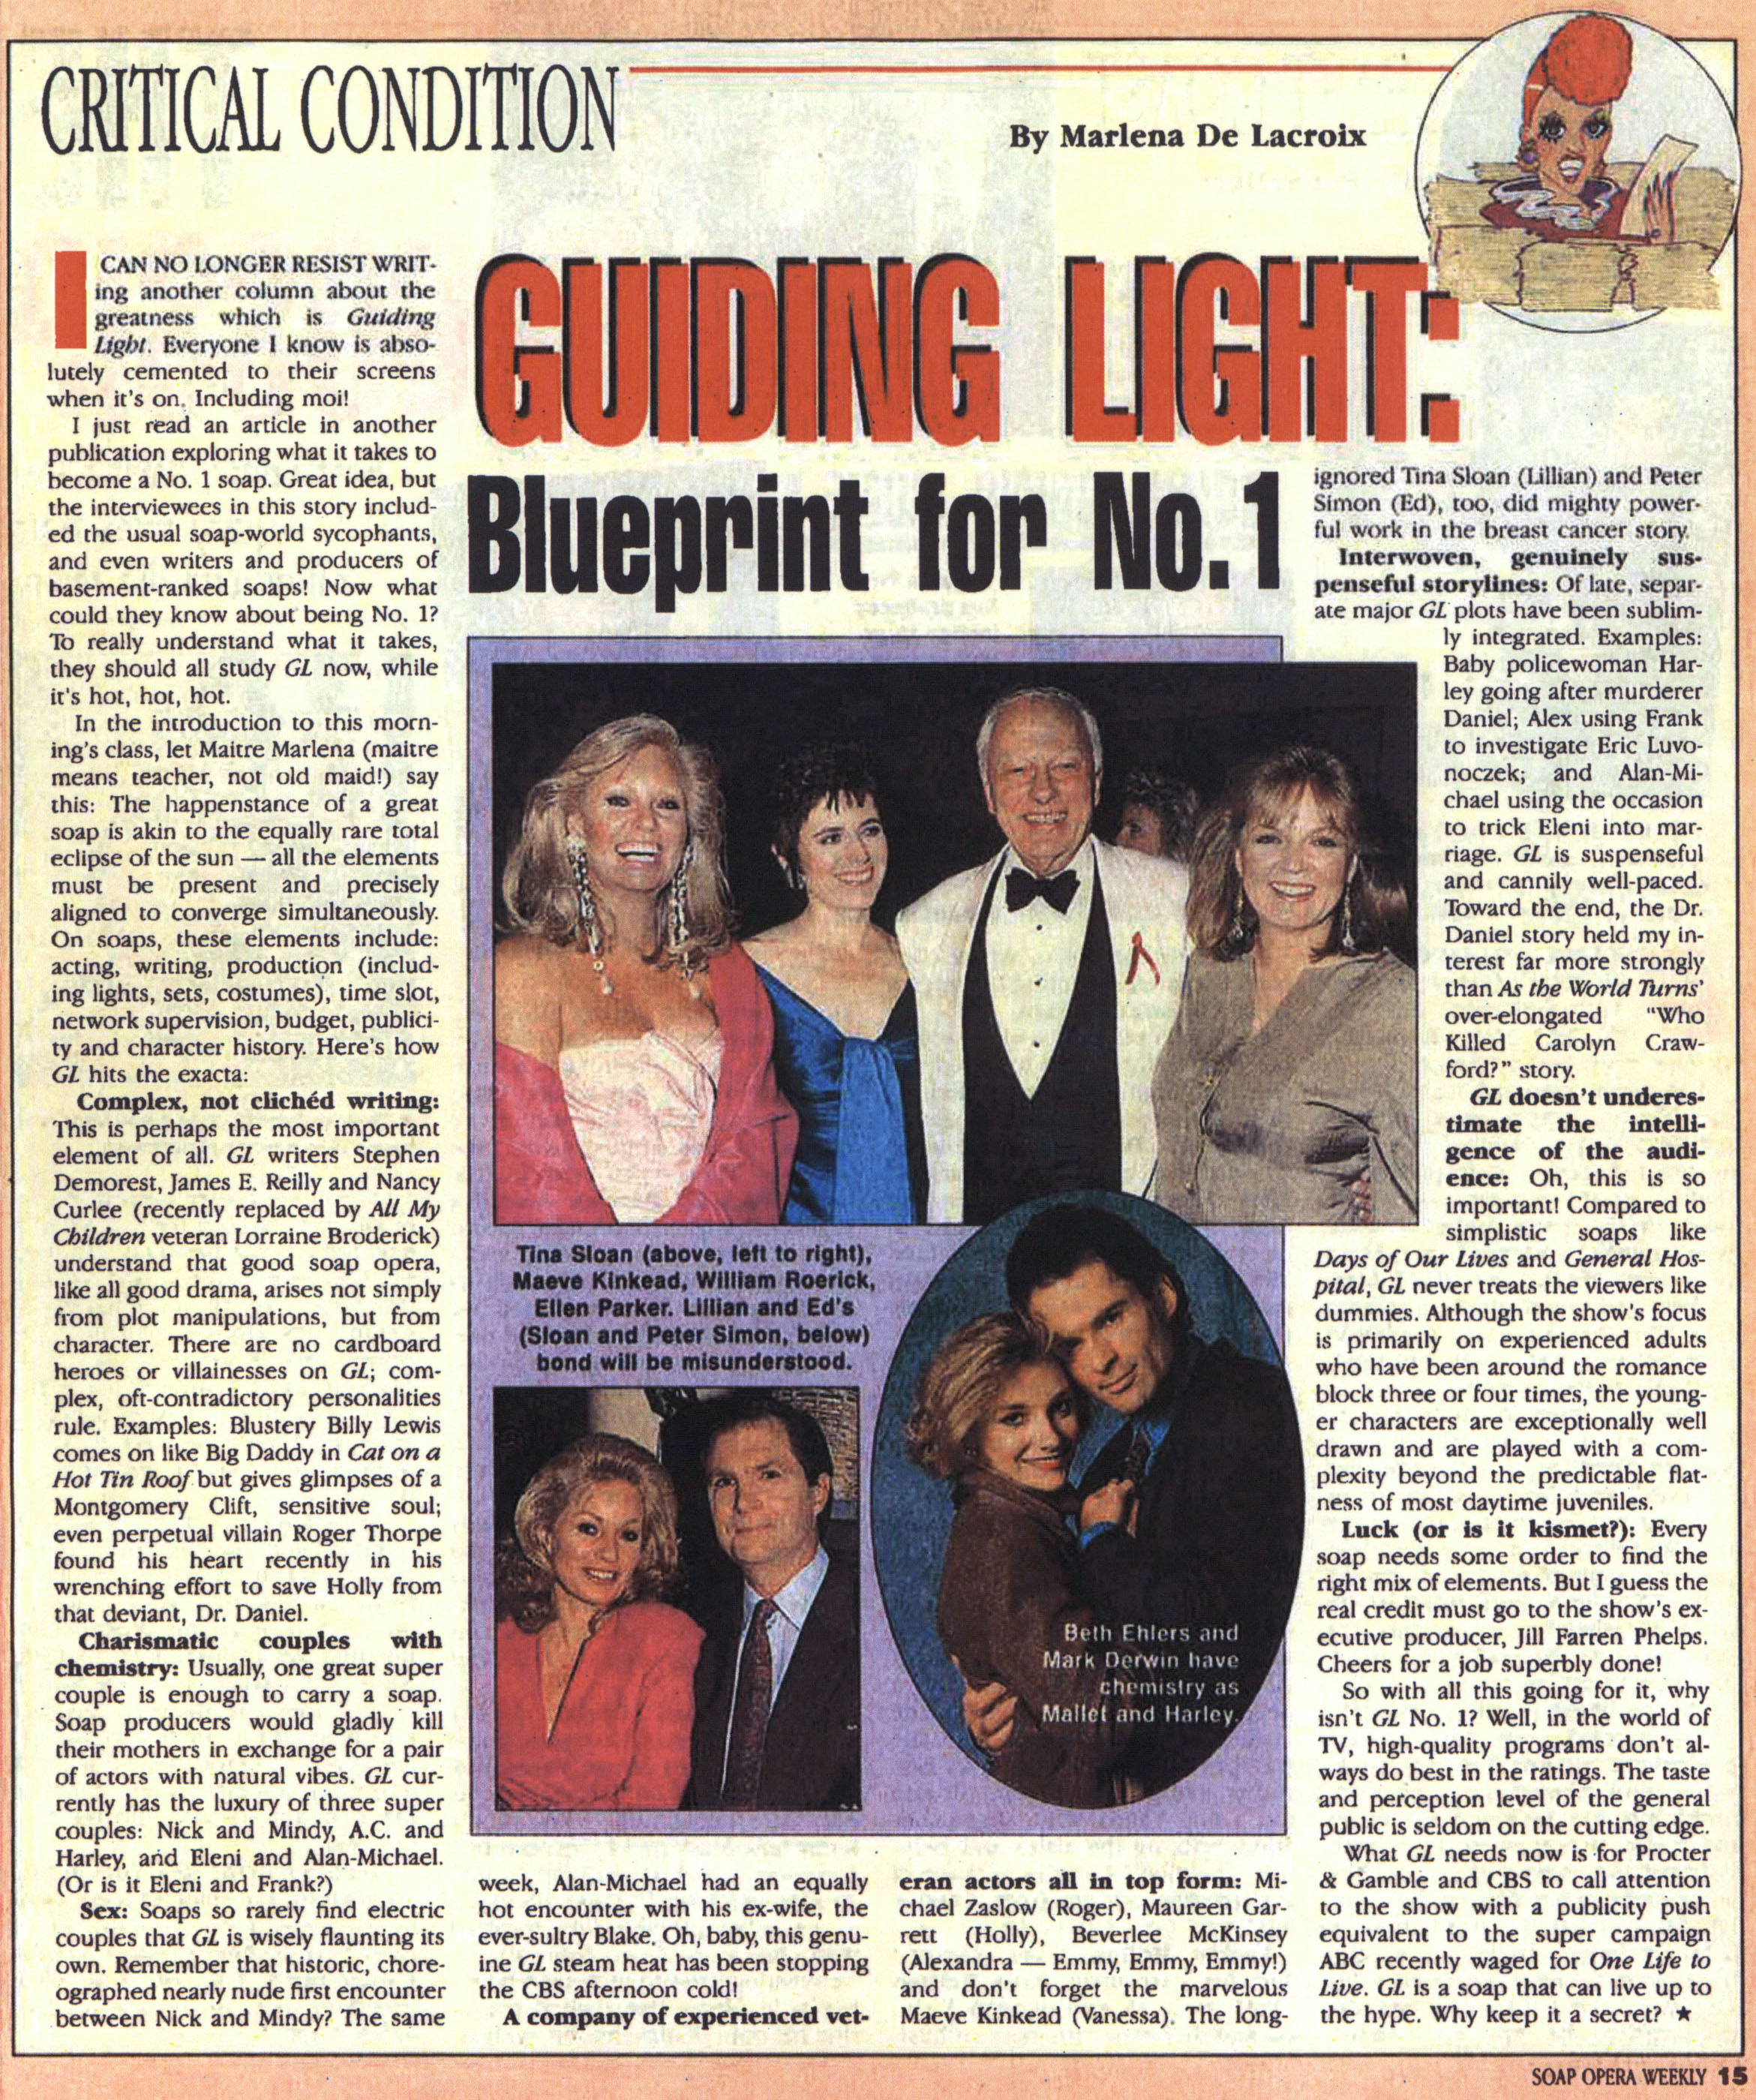 Celebrating the Glorious Life of Guiding Light: From 1992